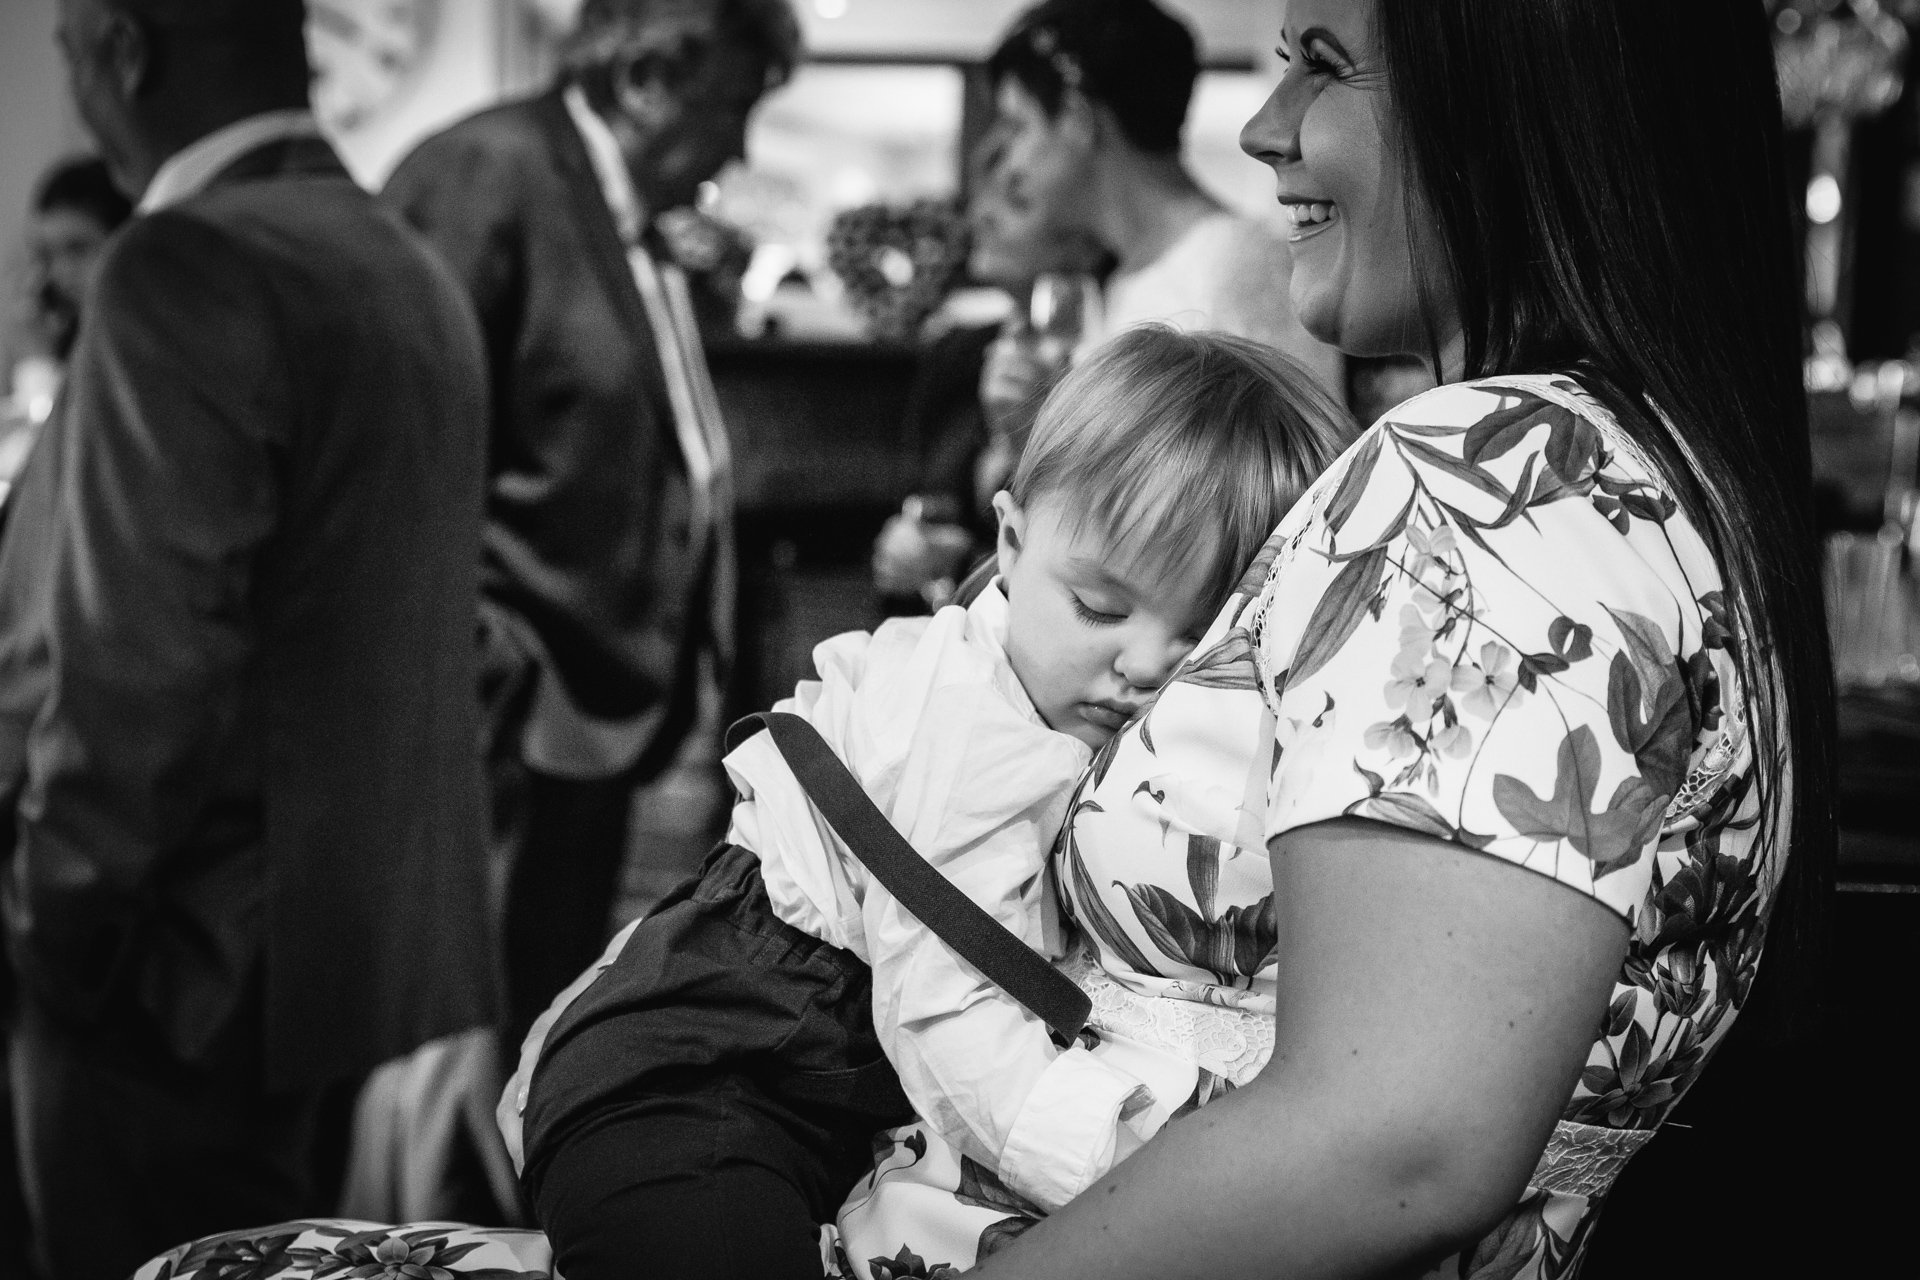 Baby asleep on his mum during wedding ceremony